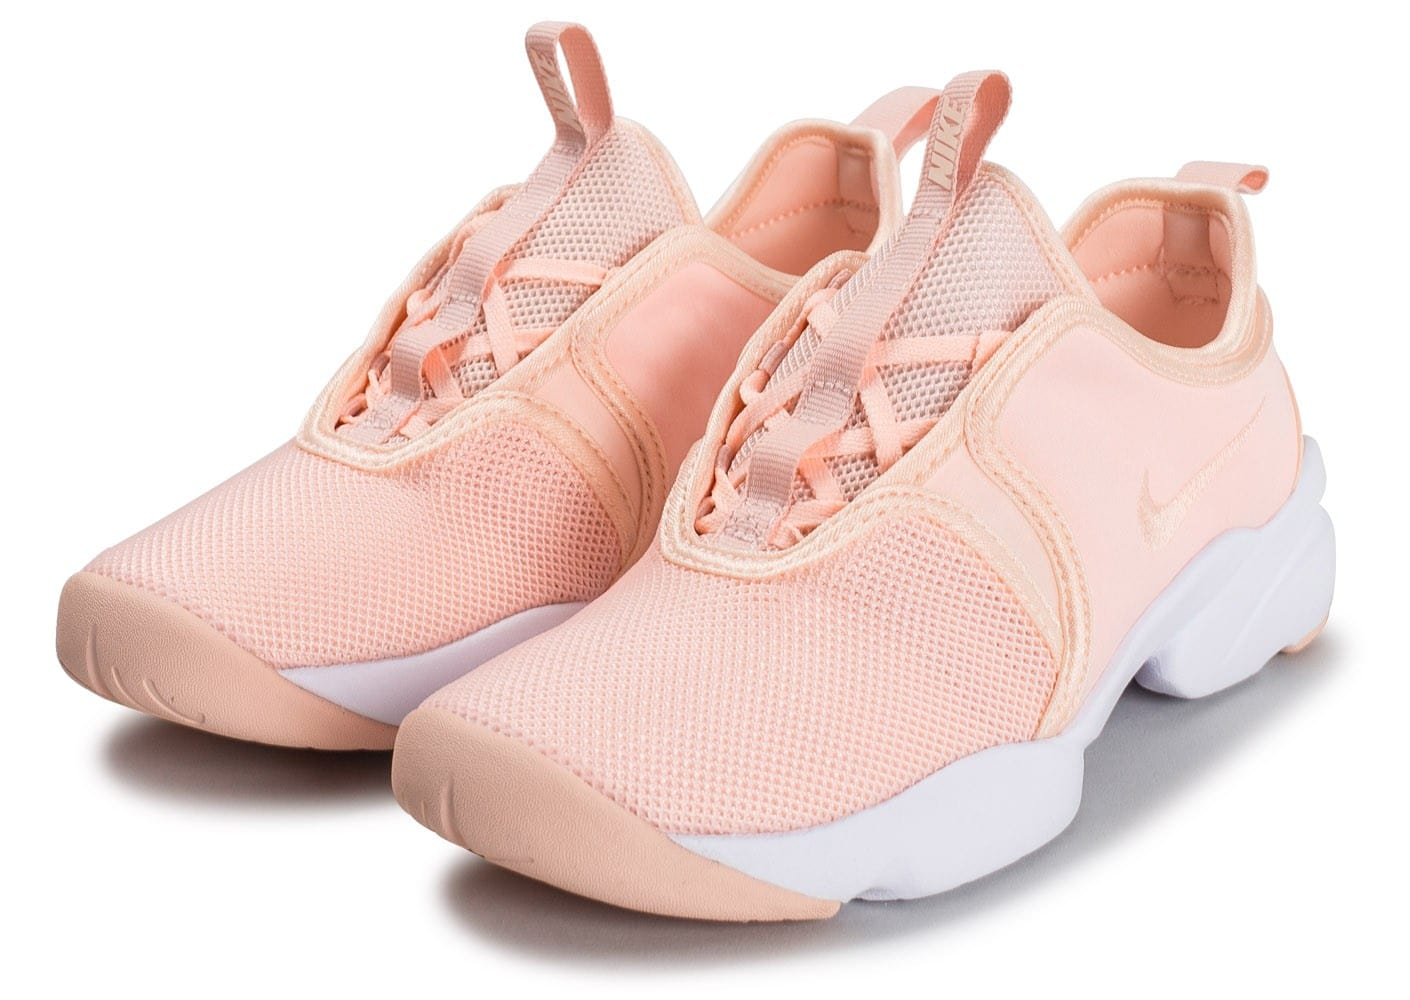 Exceptionnel Nike Loden W rose pale - Chaussures Black Friday - Chausport OI45